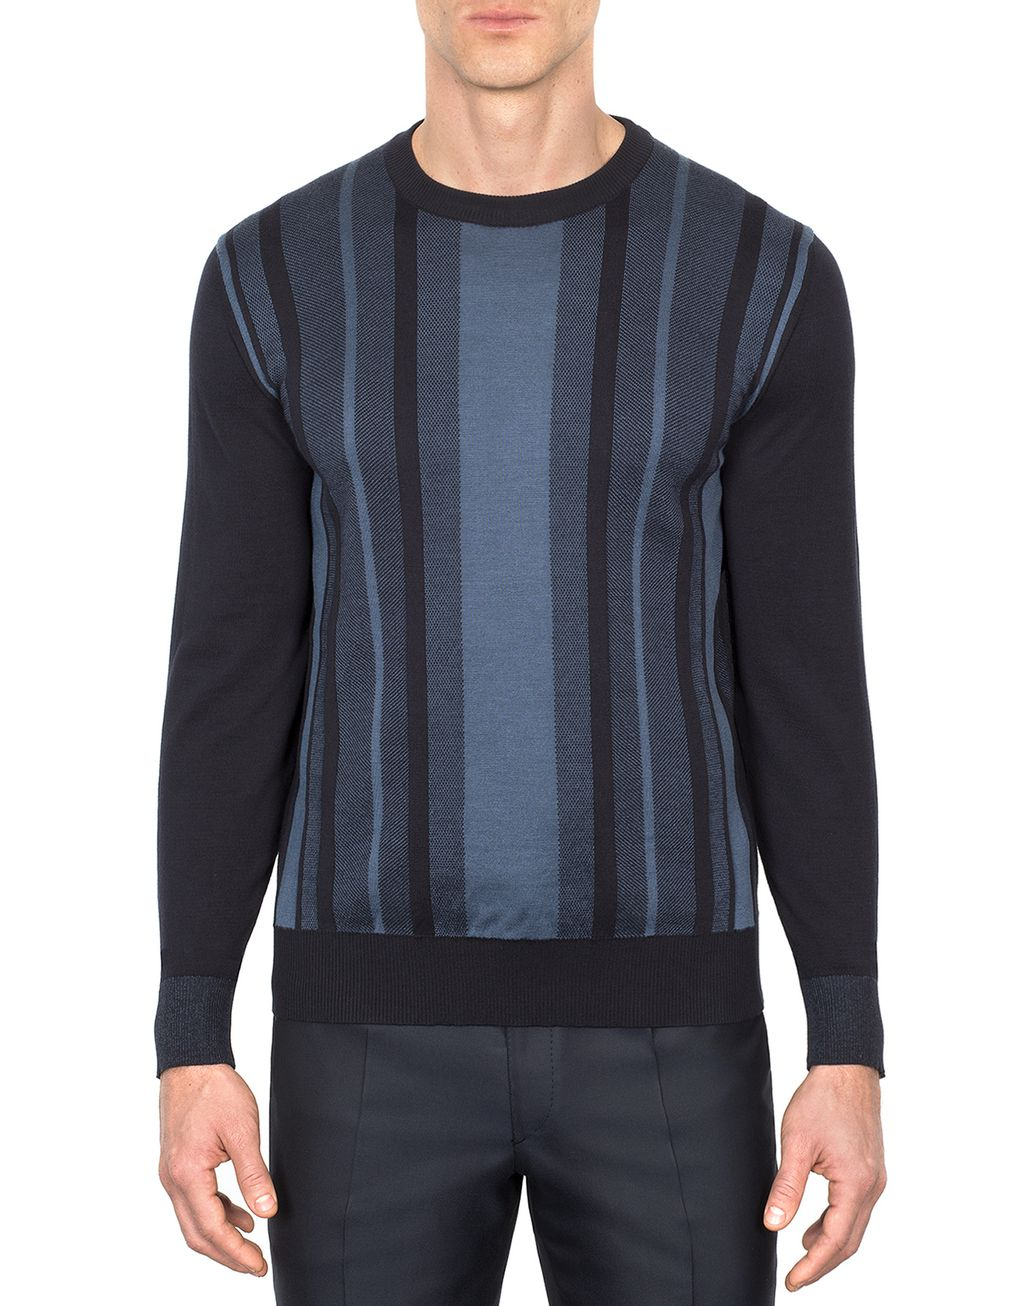 BRIONI Navy Blue Cotton and Silk Striped Sweater with Bicolour Trims Knitwear U r